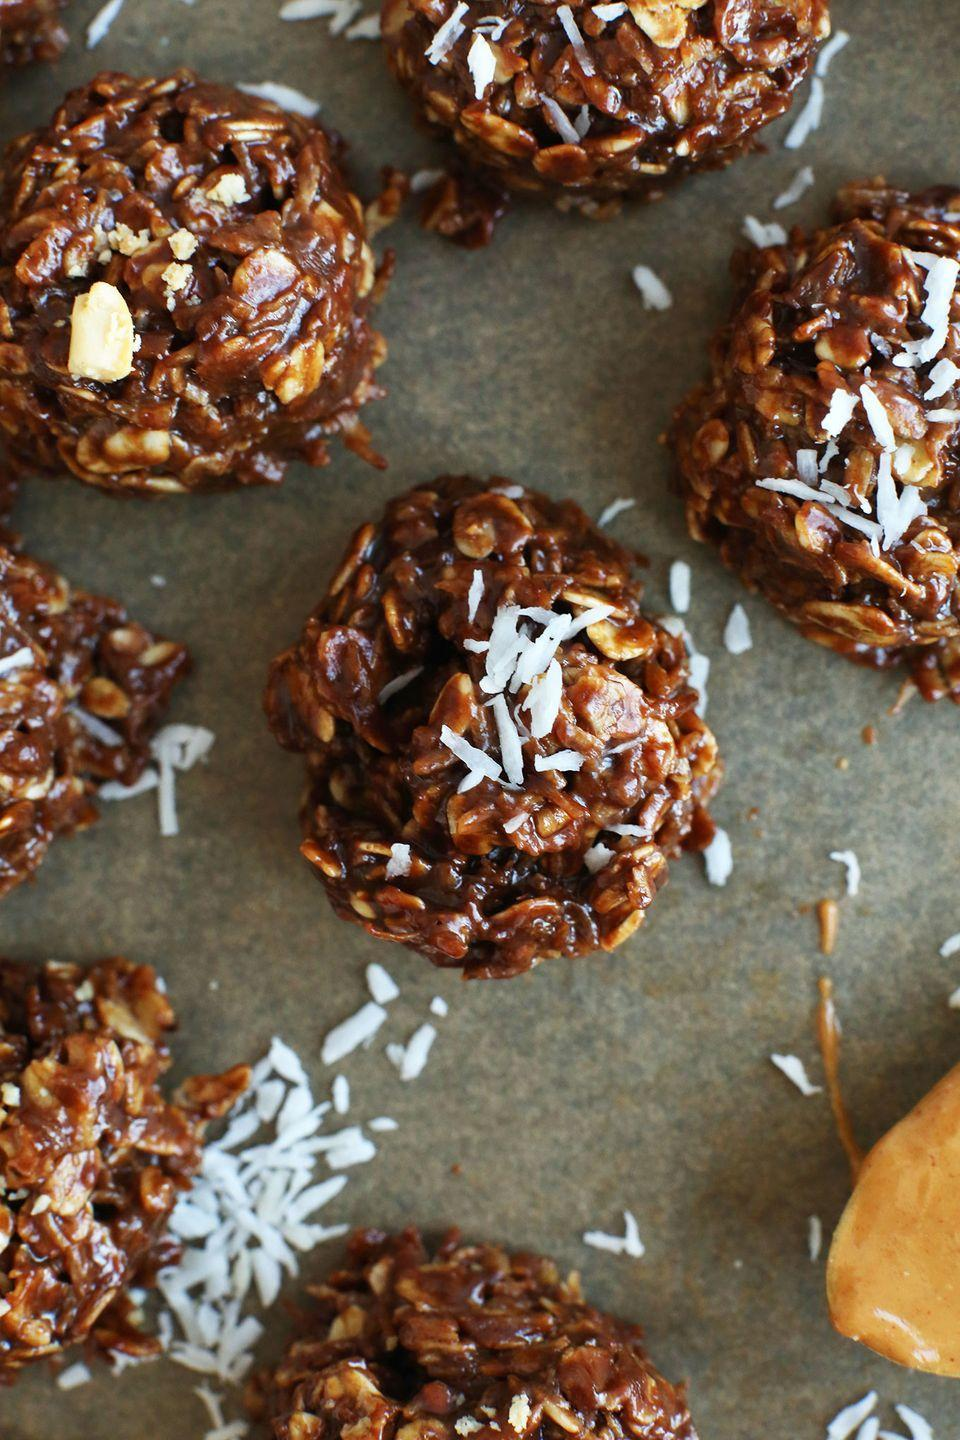 """<p>Shredded coconut is an absolute baller in the no-bake dessert world—and these cookies prove it.<br></p><p><a class=""""link rapid-noclick-resp"""" href=""""https://minimalistbaker.com/coconut-no-bake-cookies/"""" rel=""""nofollow noopener"""" target=""""_blank"""" data-ylk=""""slk:GET THE RECIPE"""">GET THE RECIPE</a></p><p><em>Per serving: 118 calories, 7.4 g fat (4 g sat), 12 g carbs, 24 mg sodium, 6.9 g sugar, 1.6 g fiber, 2.4 g protein</em></p>"""